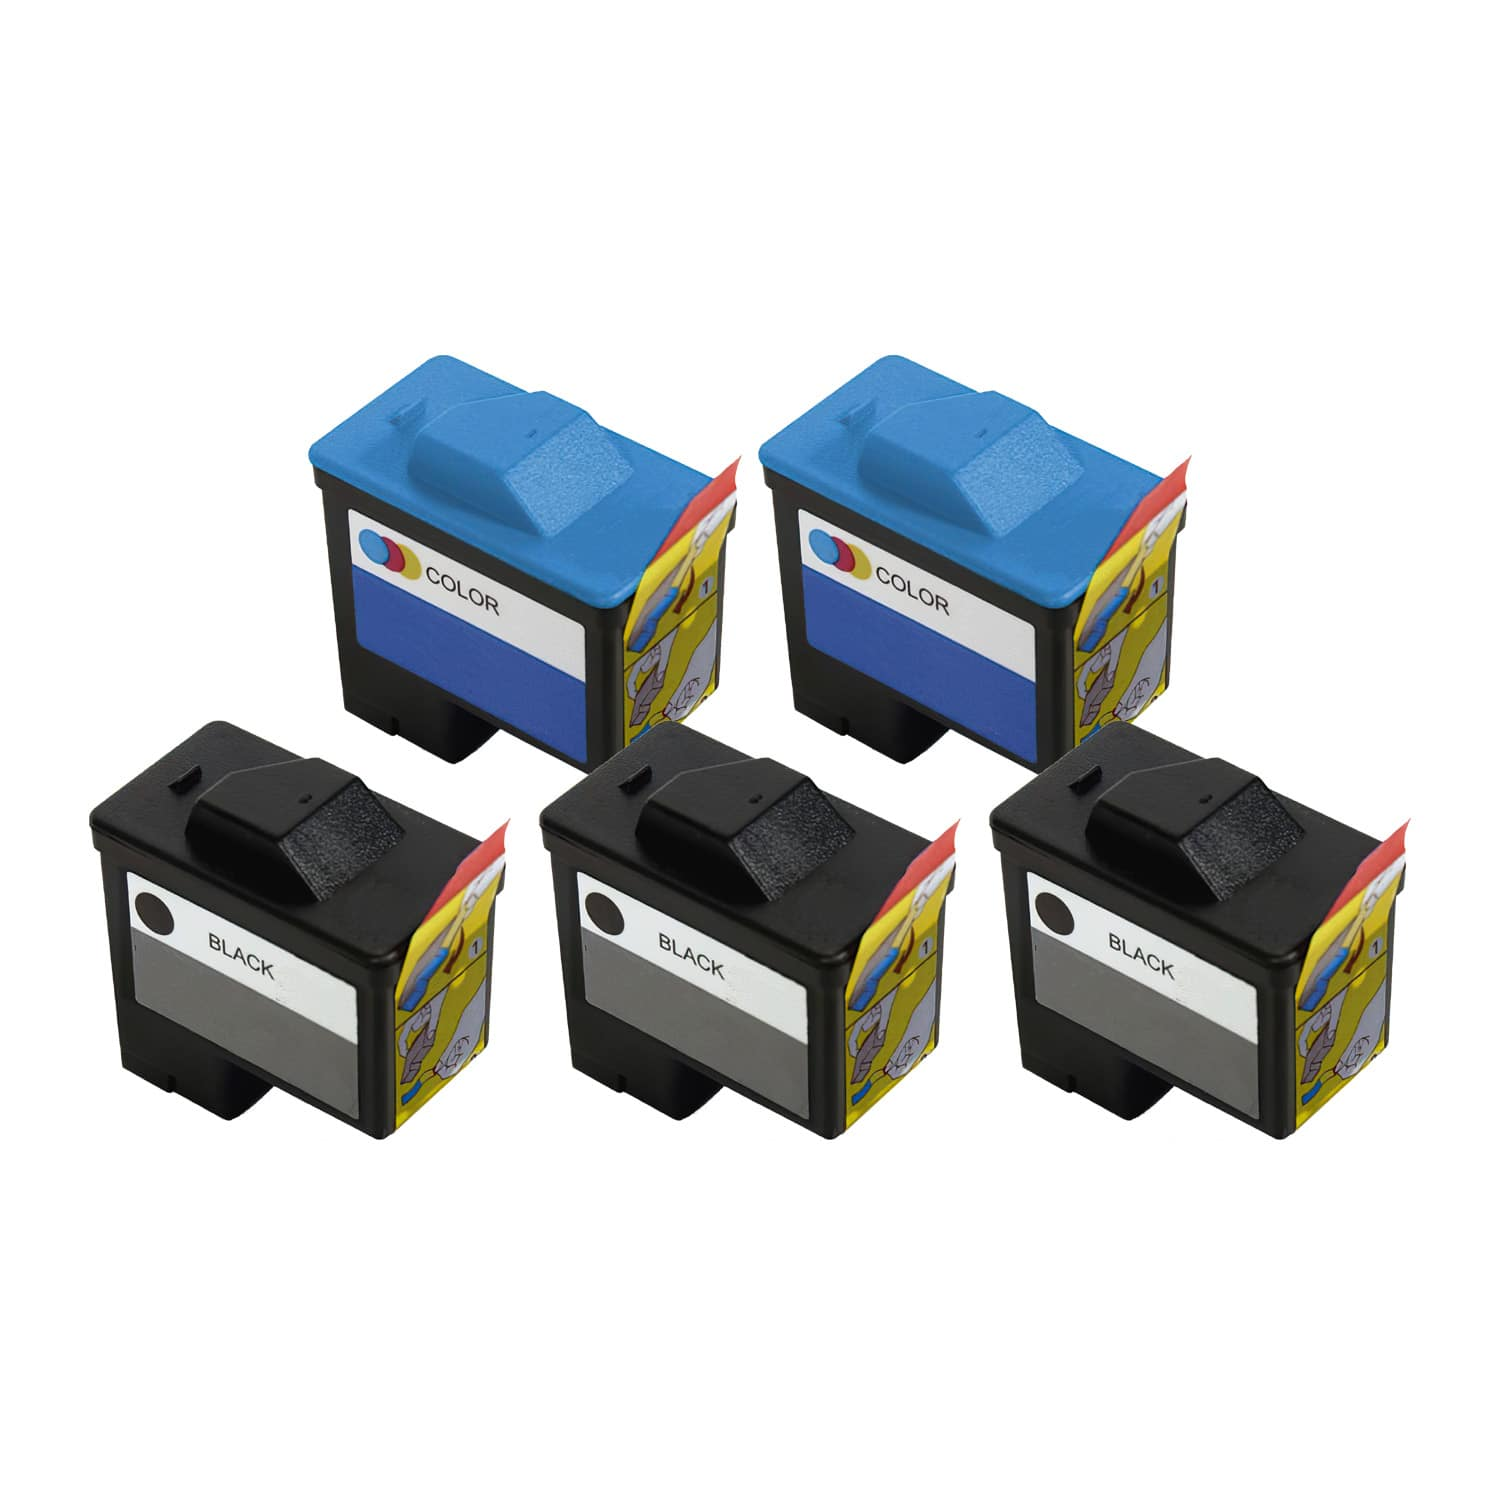 Remanufactured Dell Series 1 Inkjet Pack - 5 Cartridges